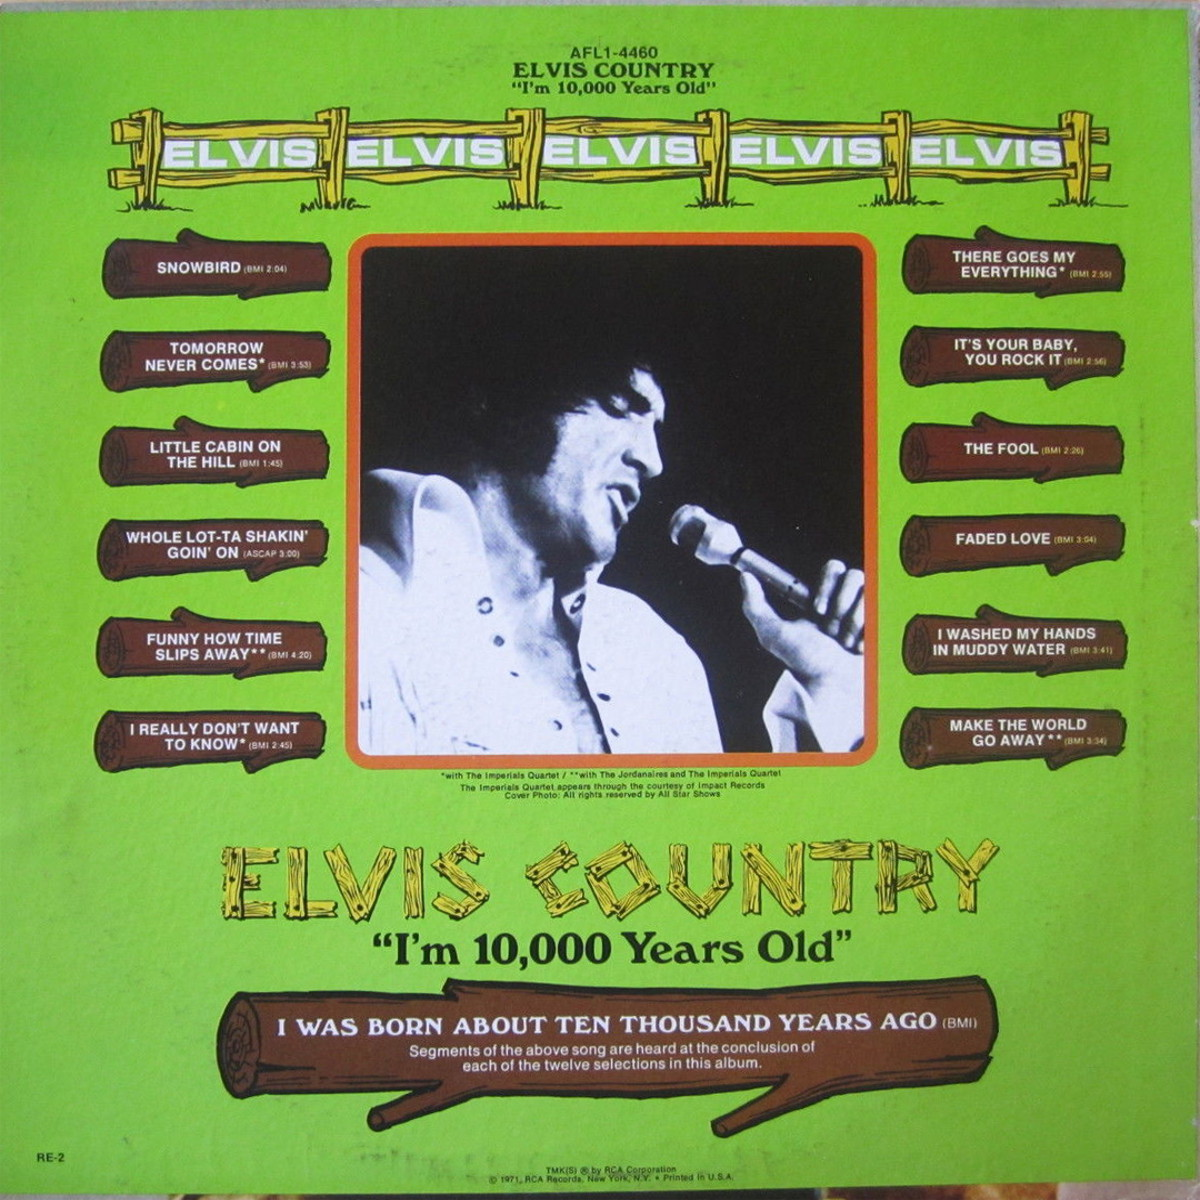 ELVIS COUNTRY Afl1-4460bjyj86